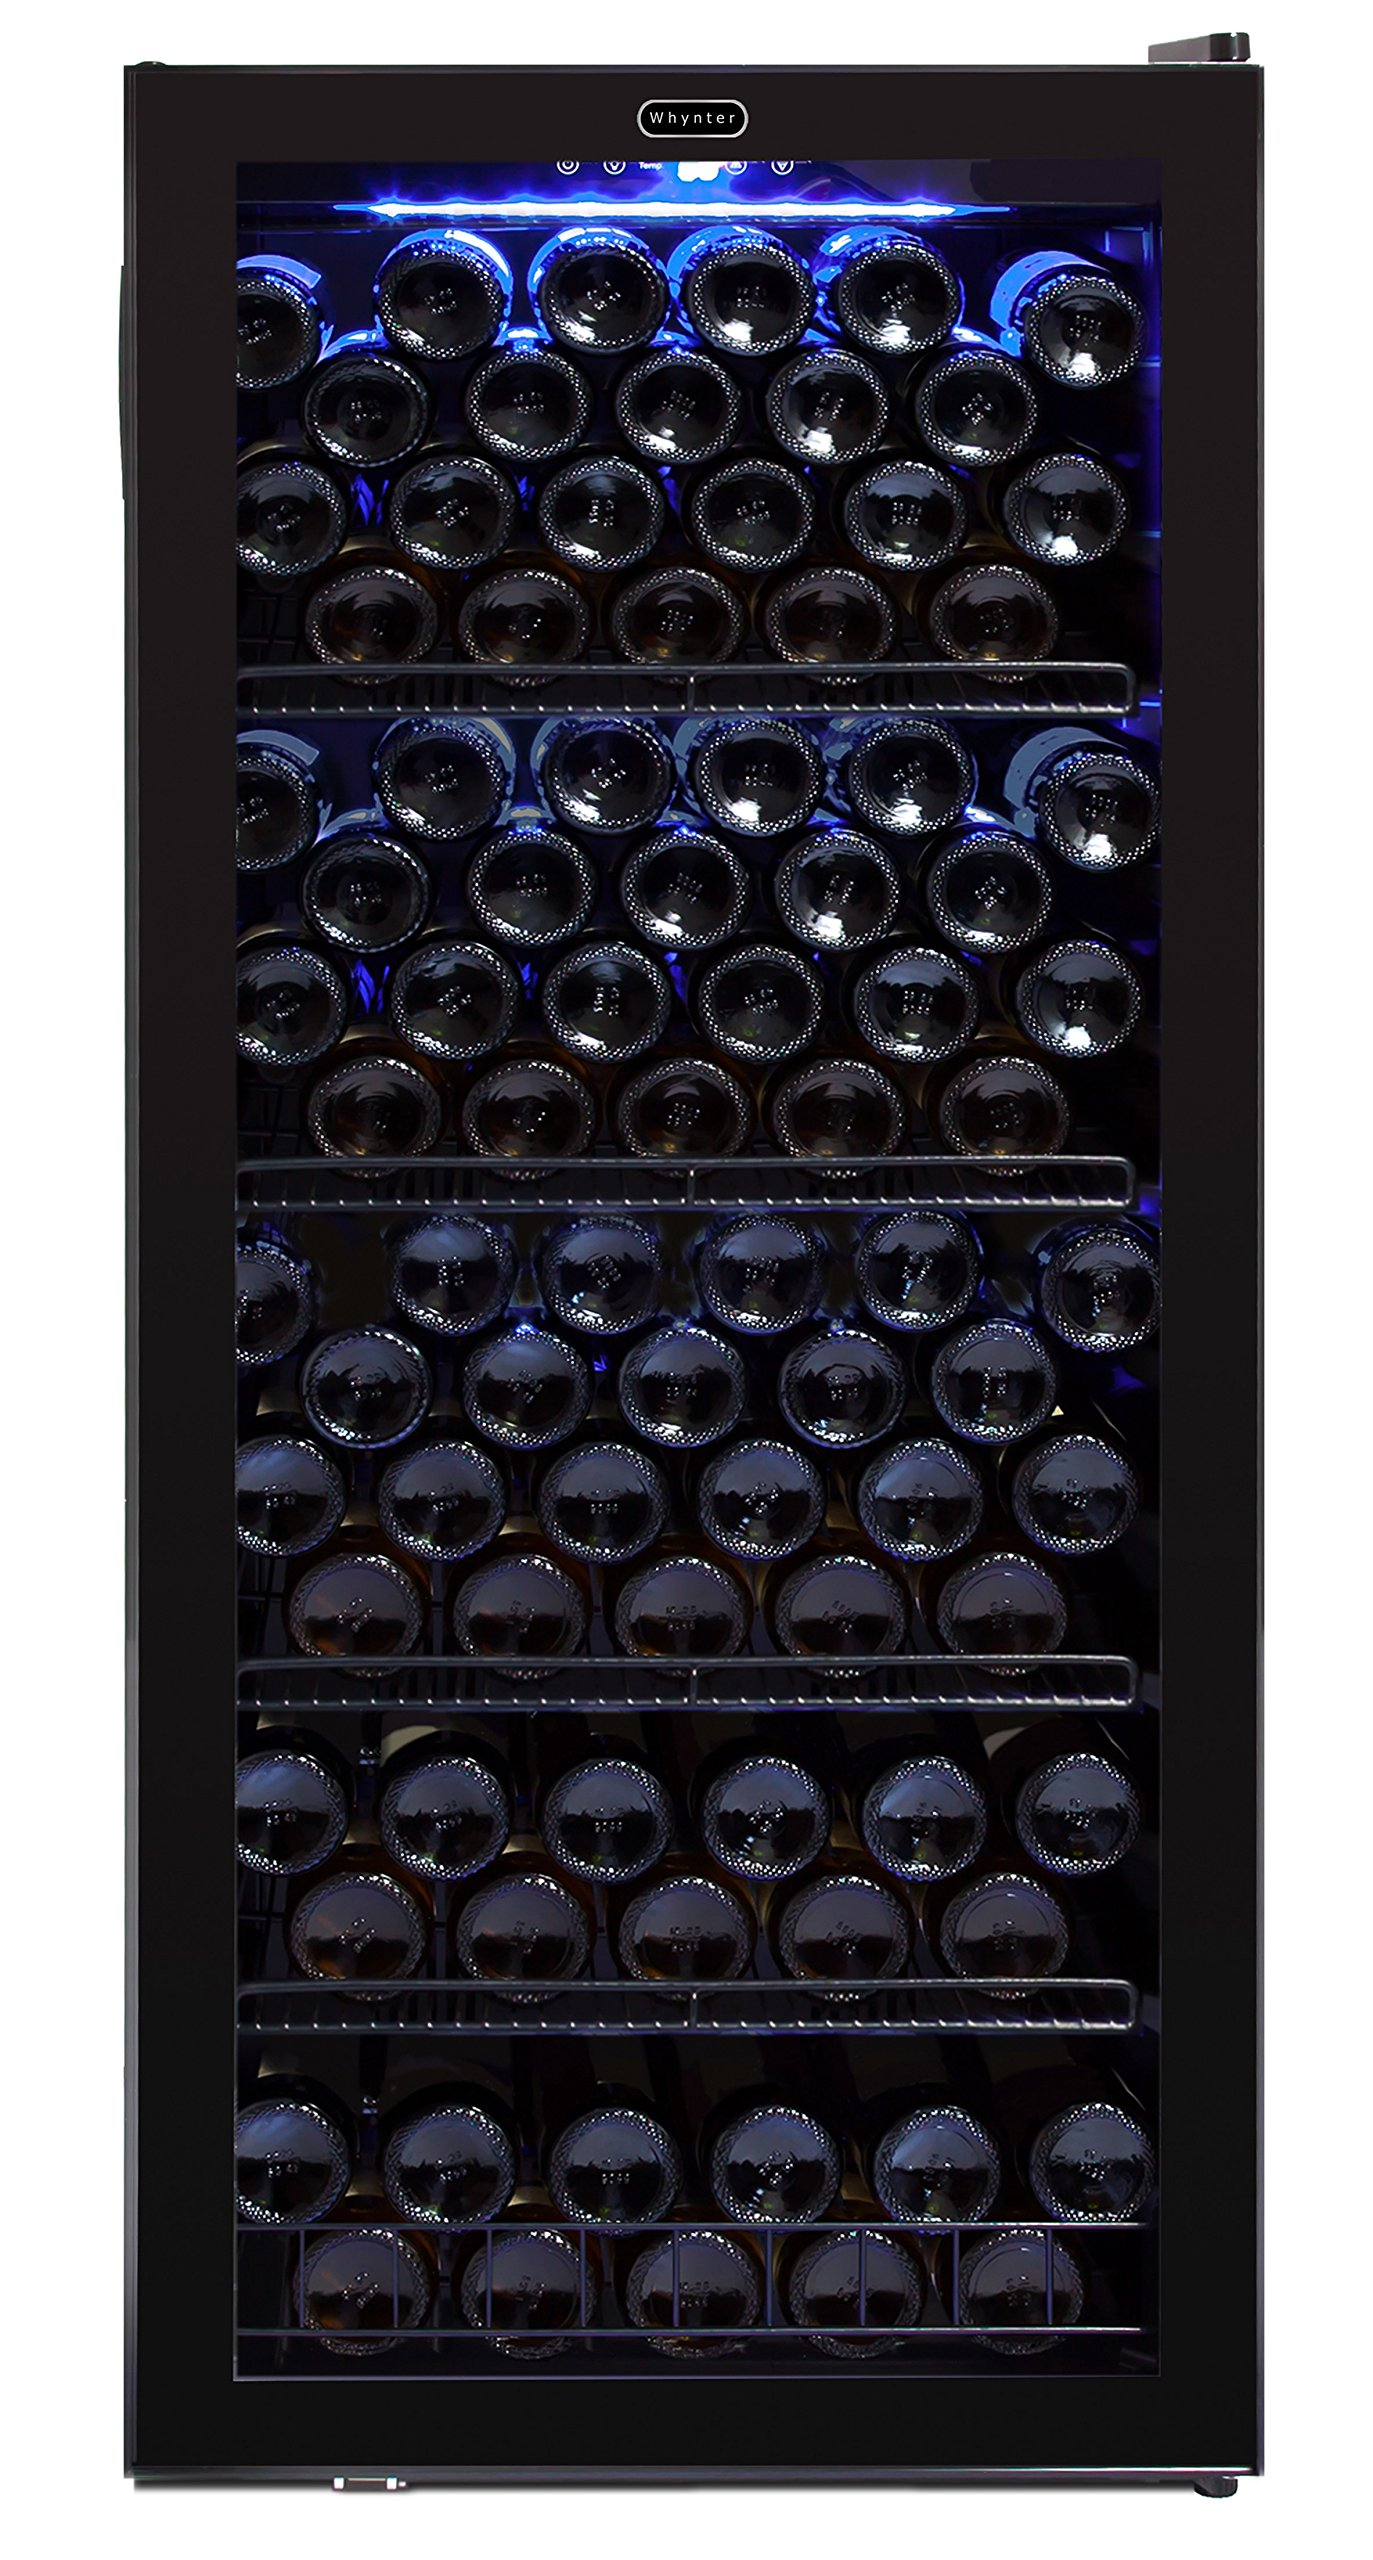 Whynter FWC-1201BB 124 Bottle Freestanding Cabinet Wine Refrigerators Built in and Free Standing, One Size, Black by Whynter